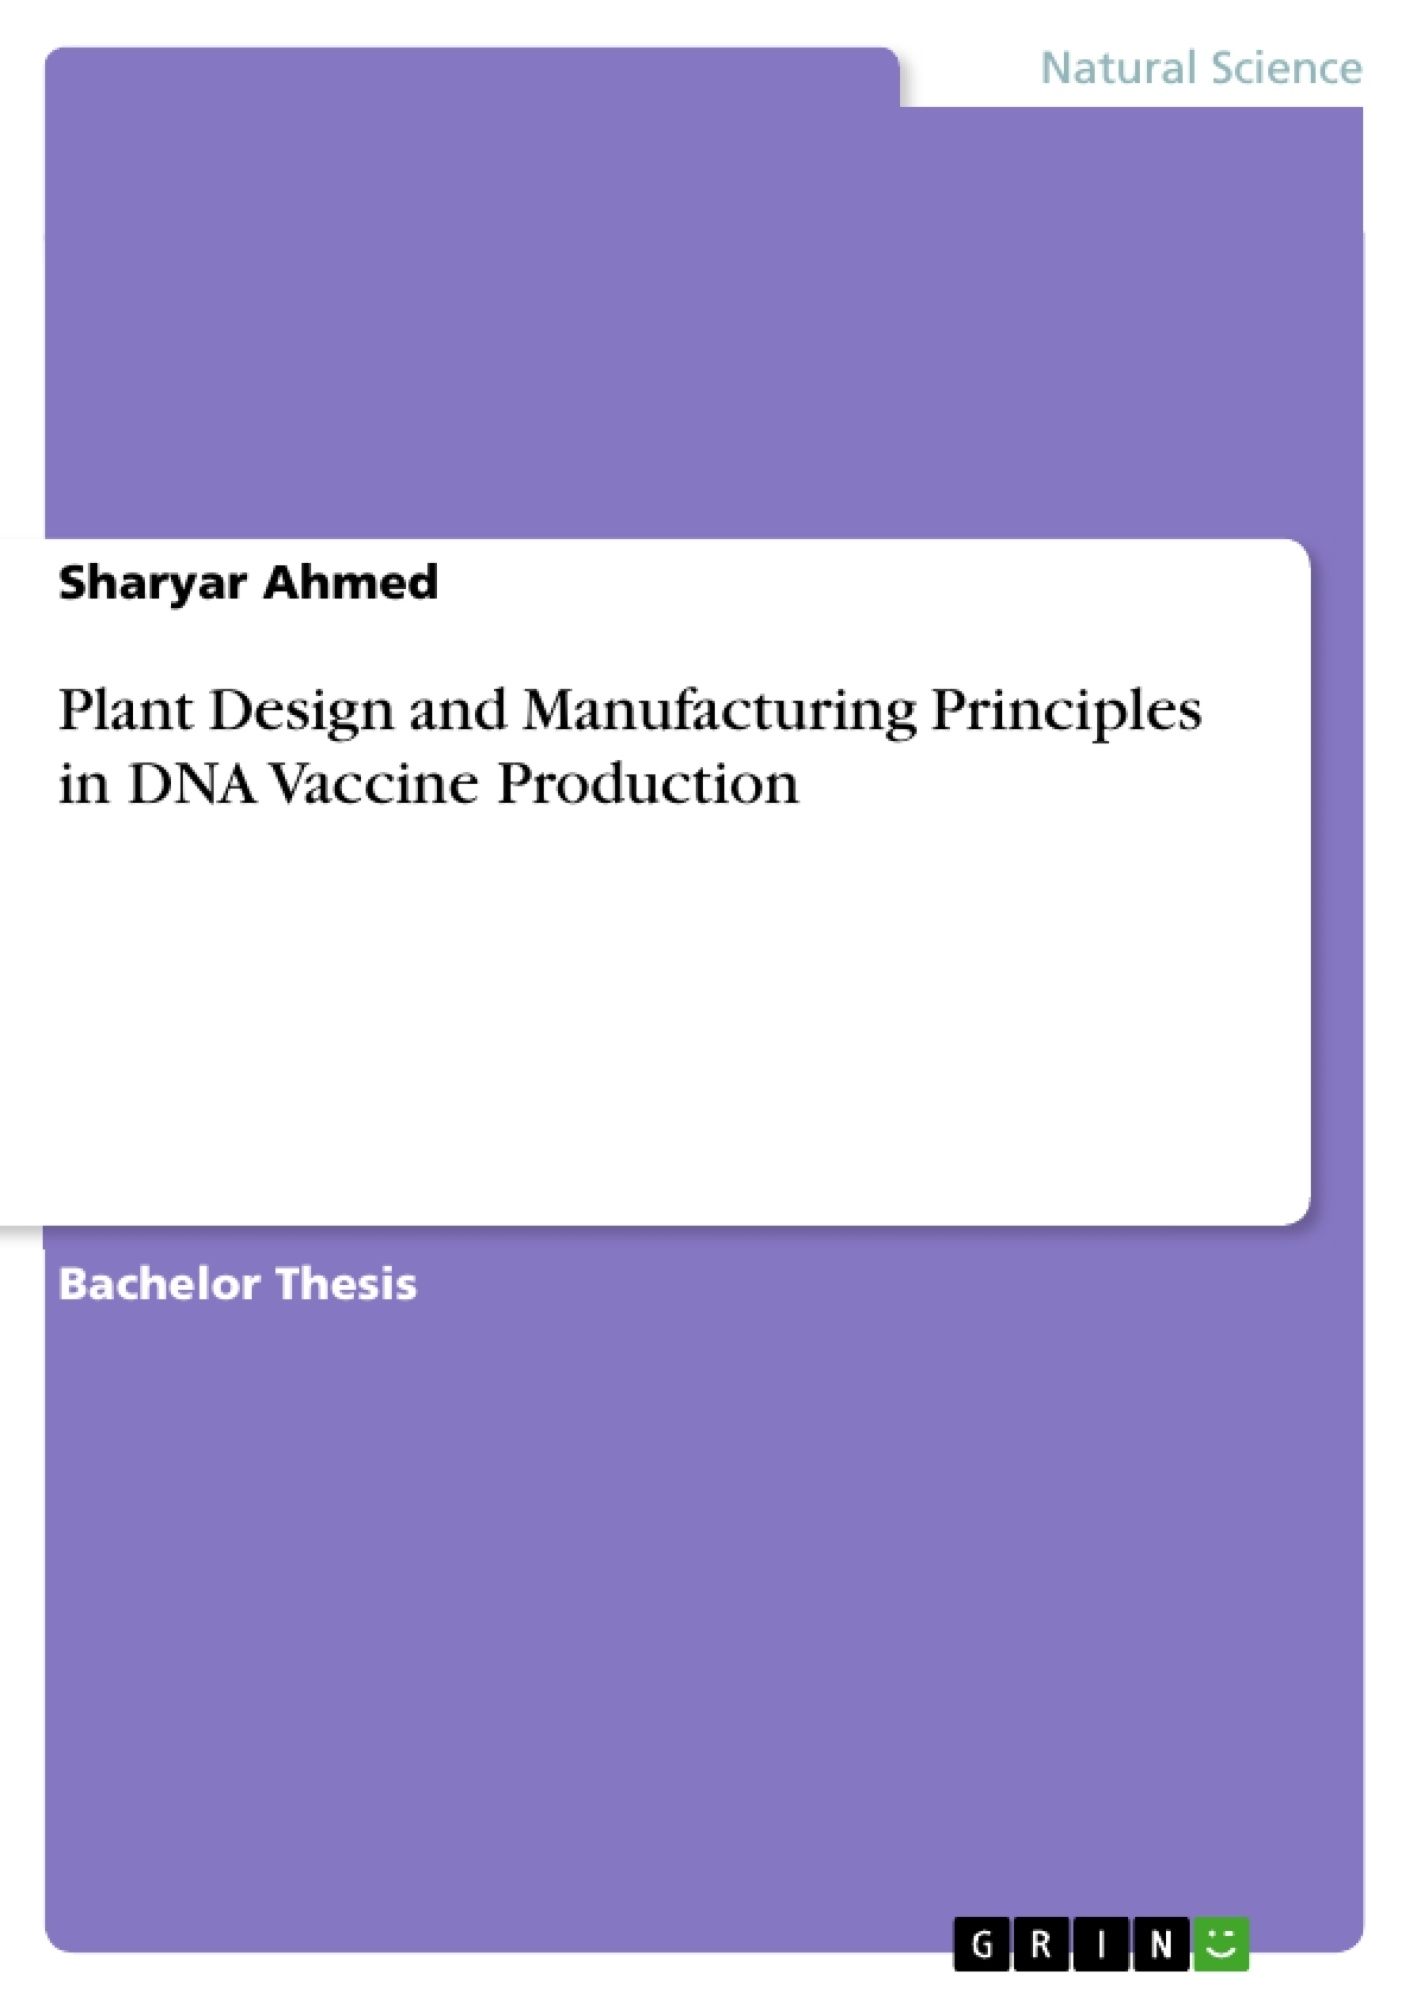 Title: Plant Design and Manufacturing Principles in DNA Vaccine Production